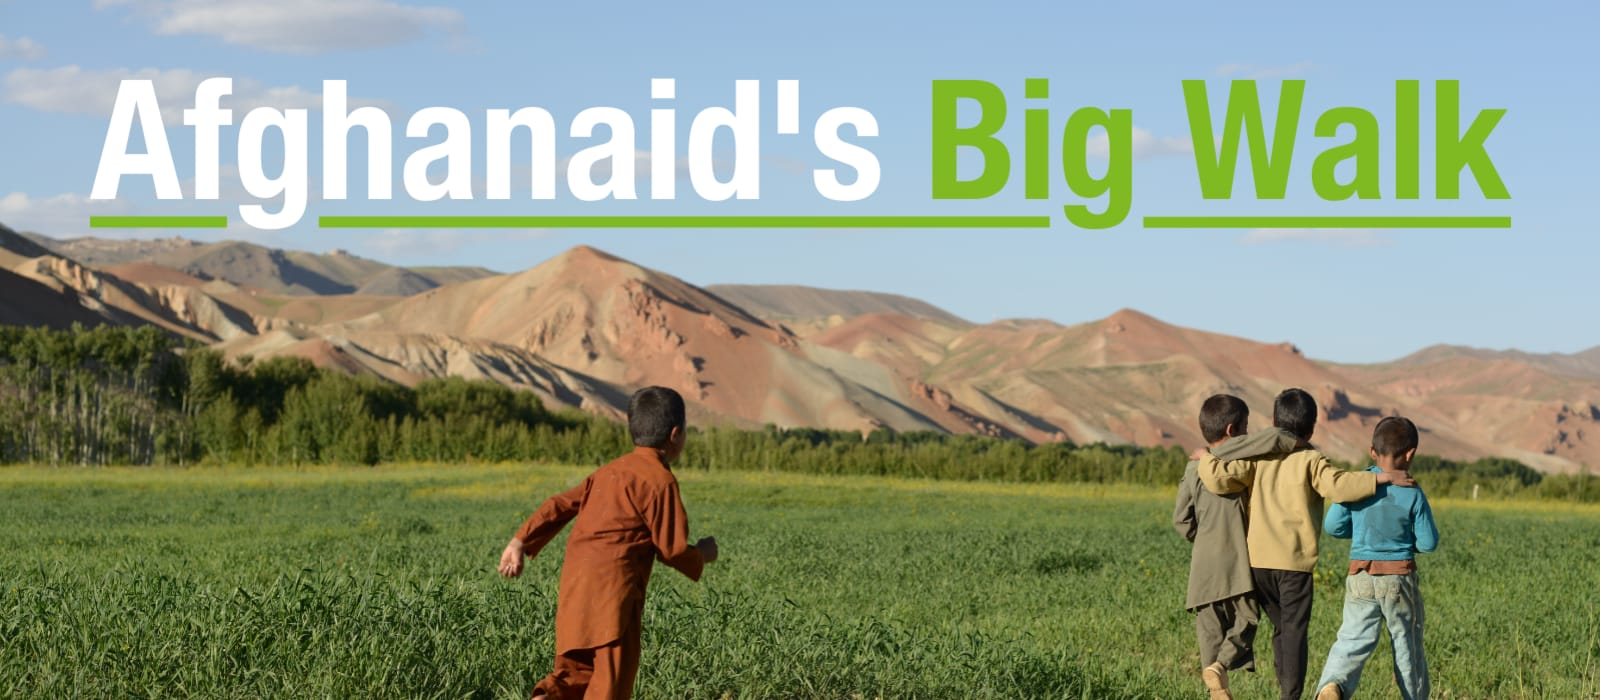 Afghanaid's Big Walk